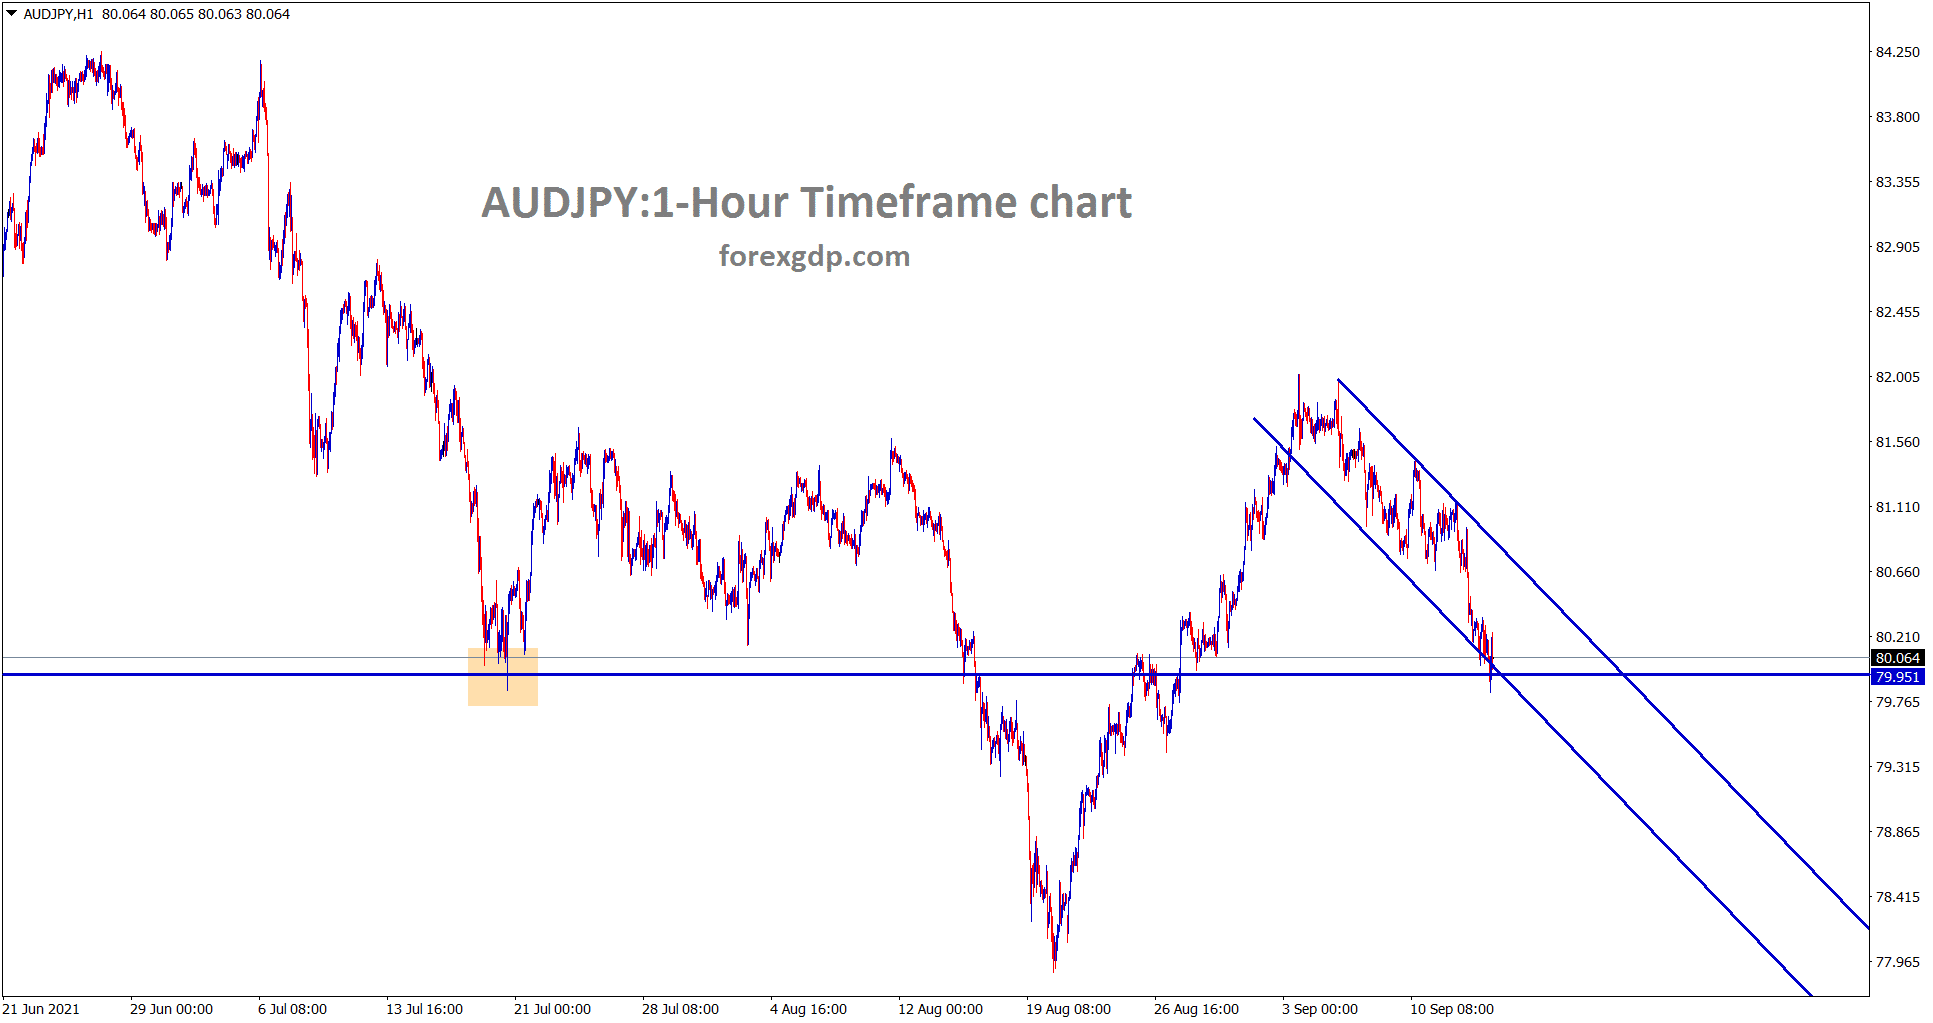 AUDJPY hits the minor support and the descending channel lower low level